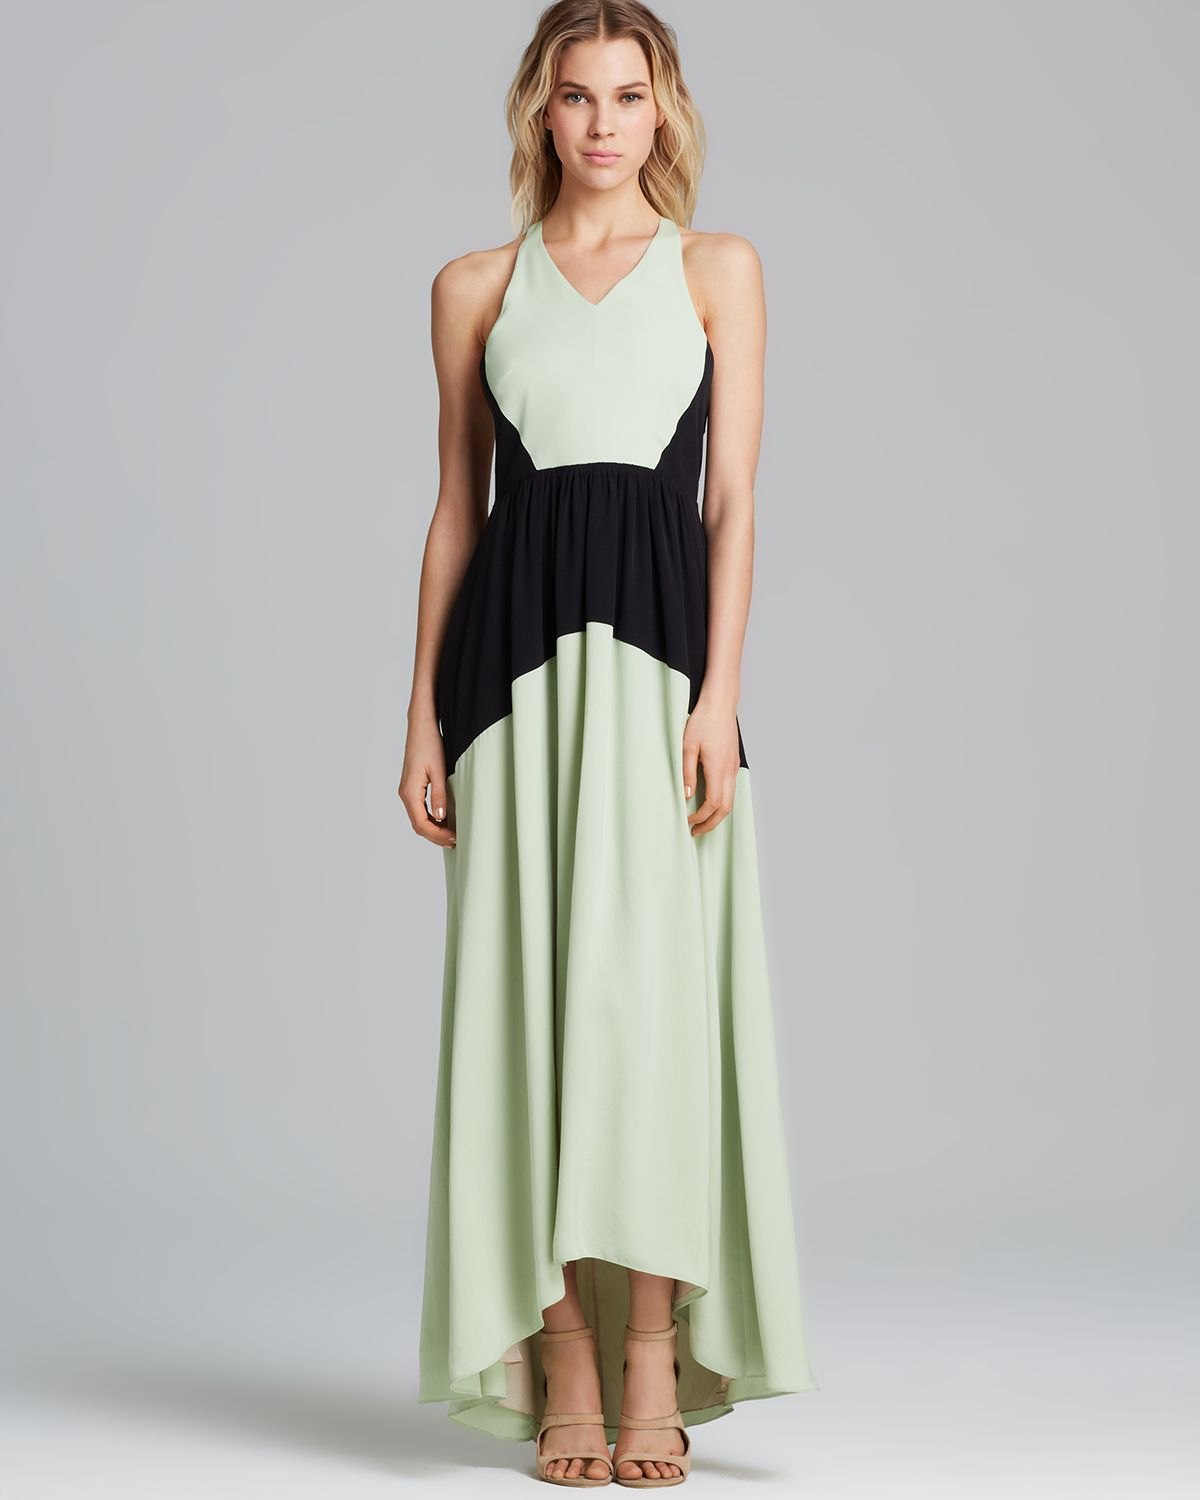 Tibi Dress - Color Block Maxi in Green | Lyst